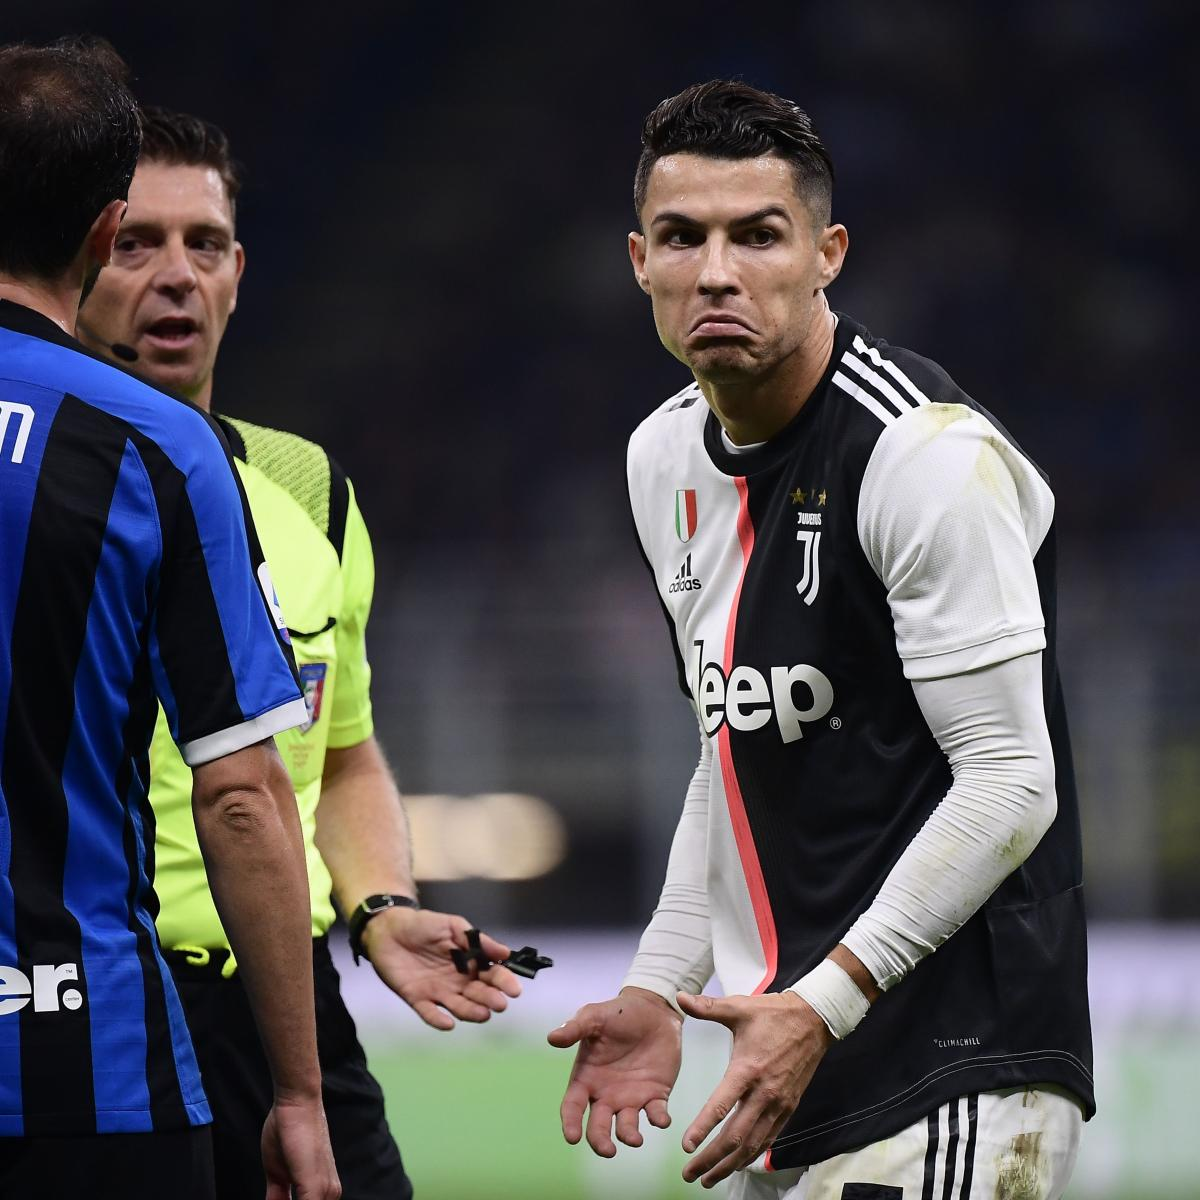 Juventus Vs Inter Milan Set For March 8 After Postponement Over Coronavirus Bleacher Report Latest News Videos And Highlights